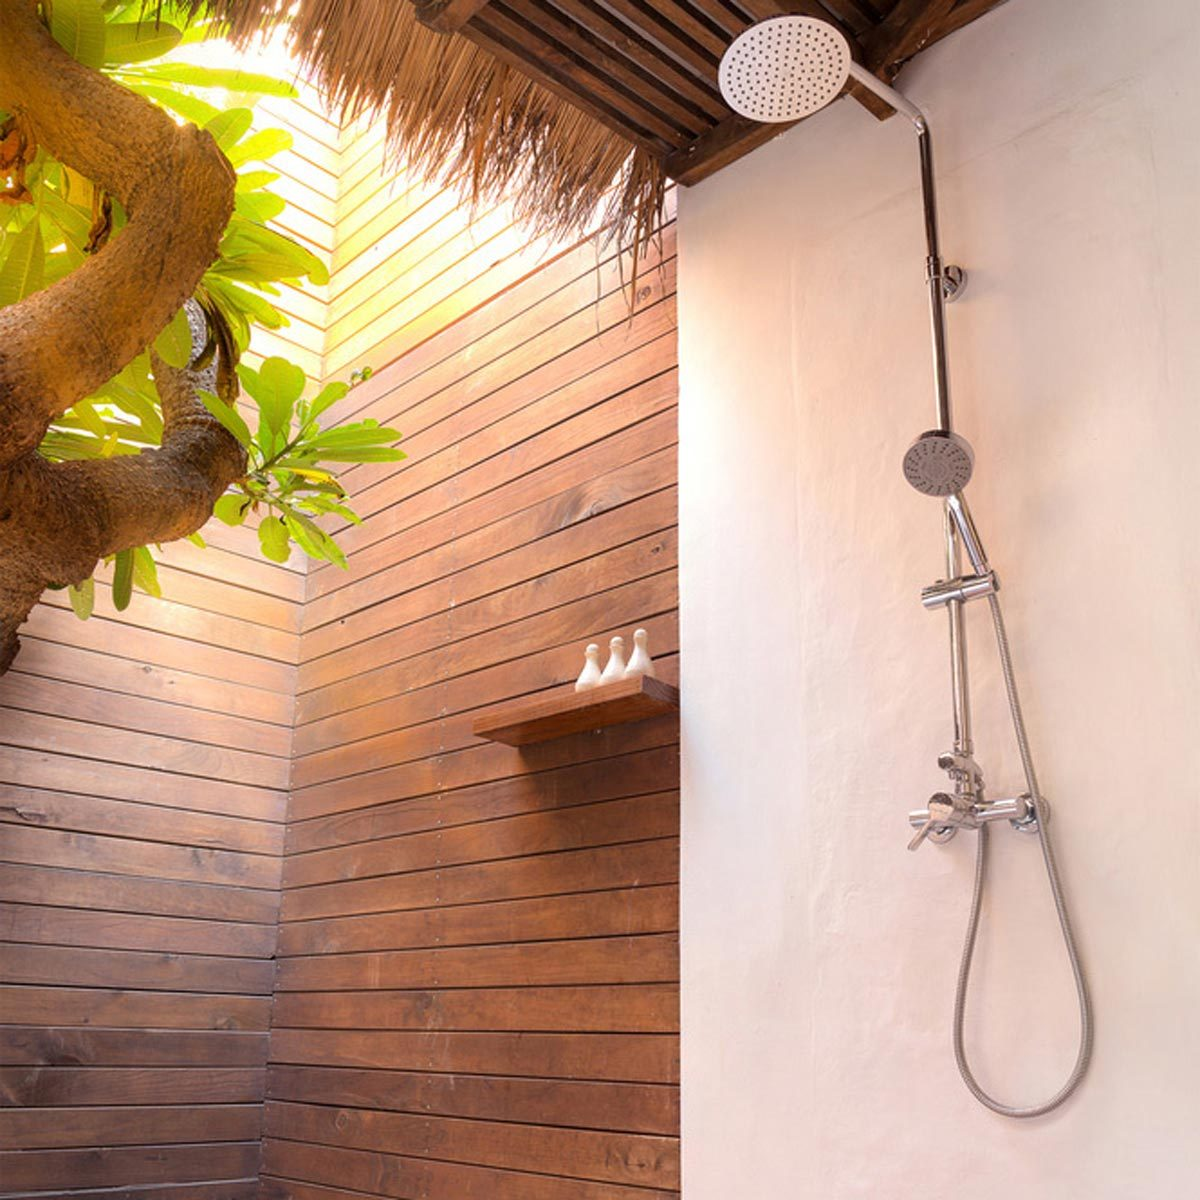 Cool Shed Ideas: Shed Shower